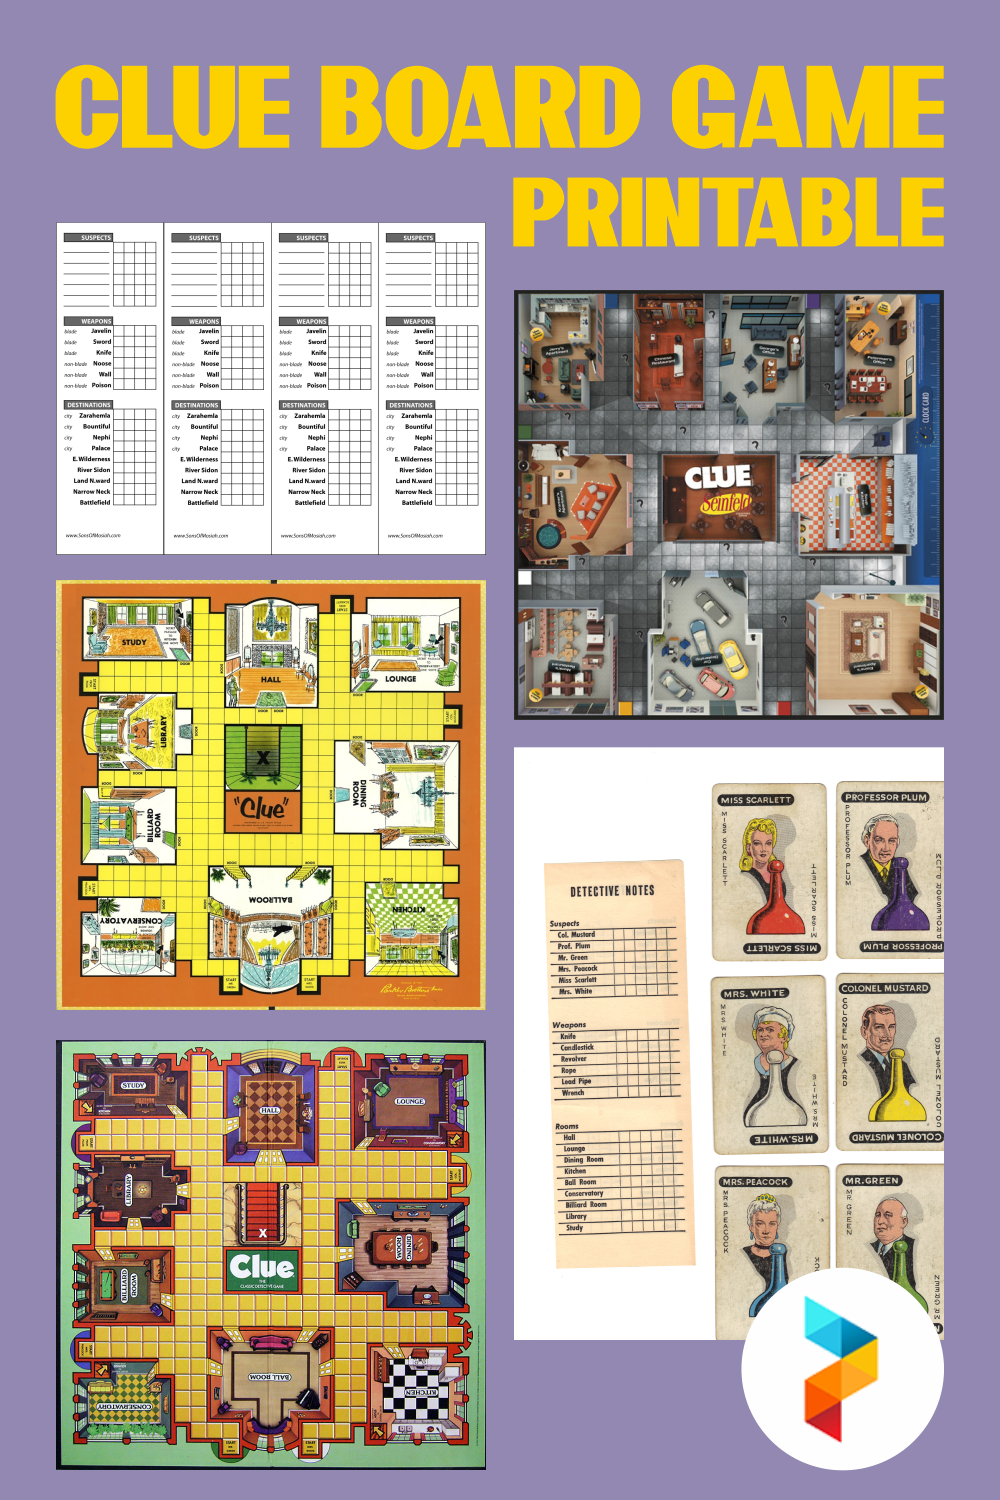 Clue Board Game Printable